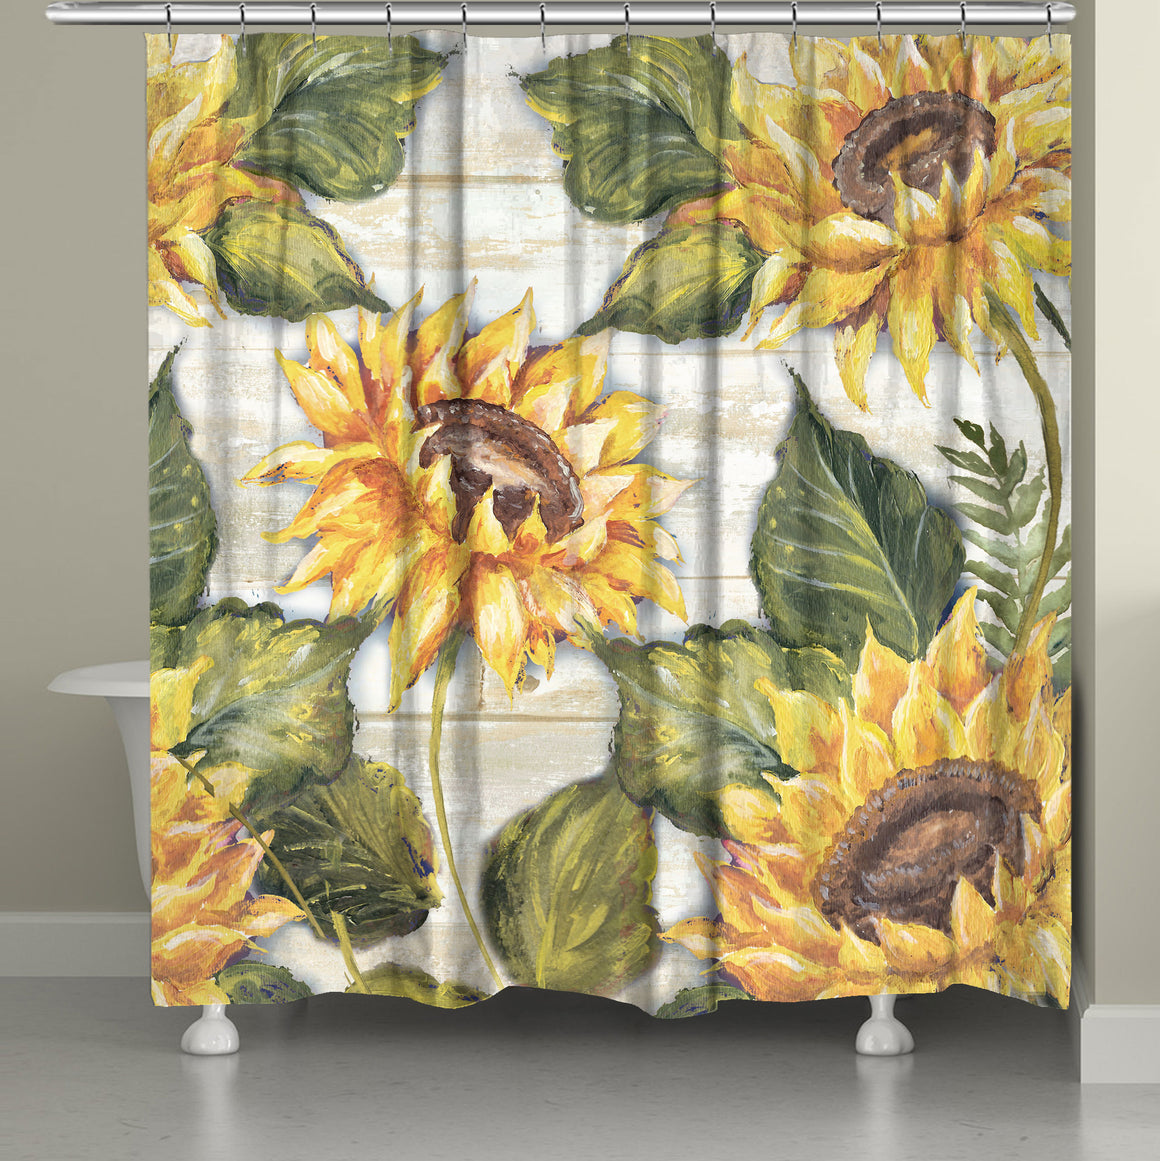 "The ""Sunflowers On Shiplap Shower Curtain"" displays printed oversized sunflowers from original hand painted artwork. The soft, oversized florals displayed on a soft cream shiplap wood texture reveals a sophisticated artful taste that is sure to bring life to any bathroom space!"